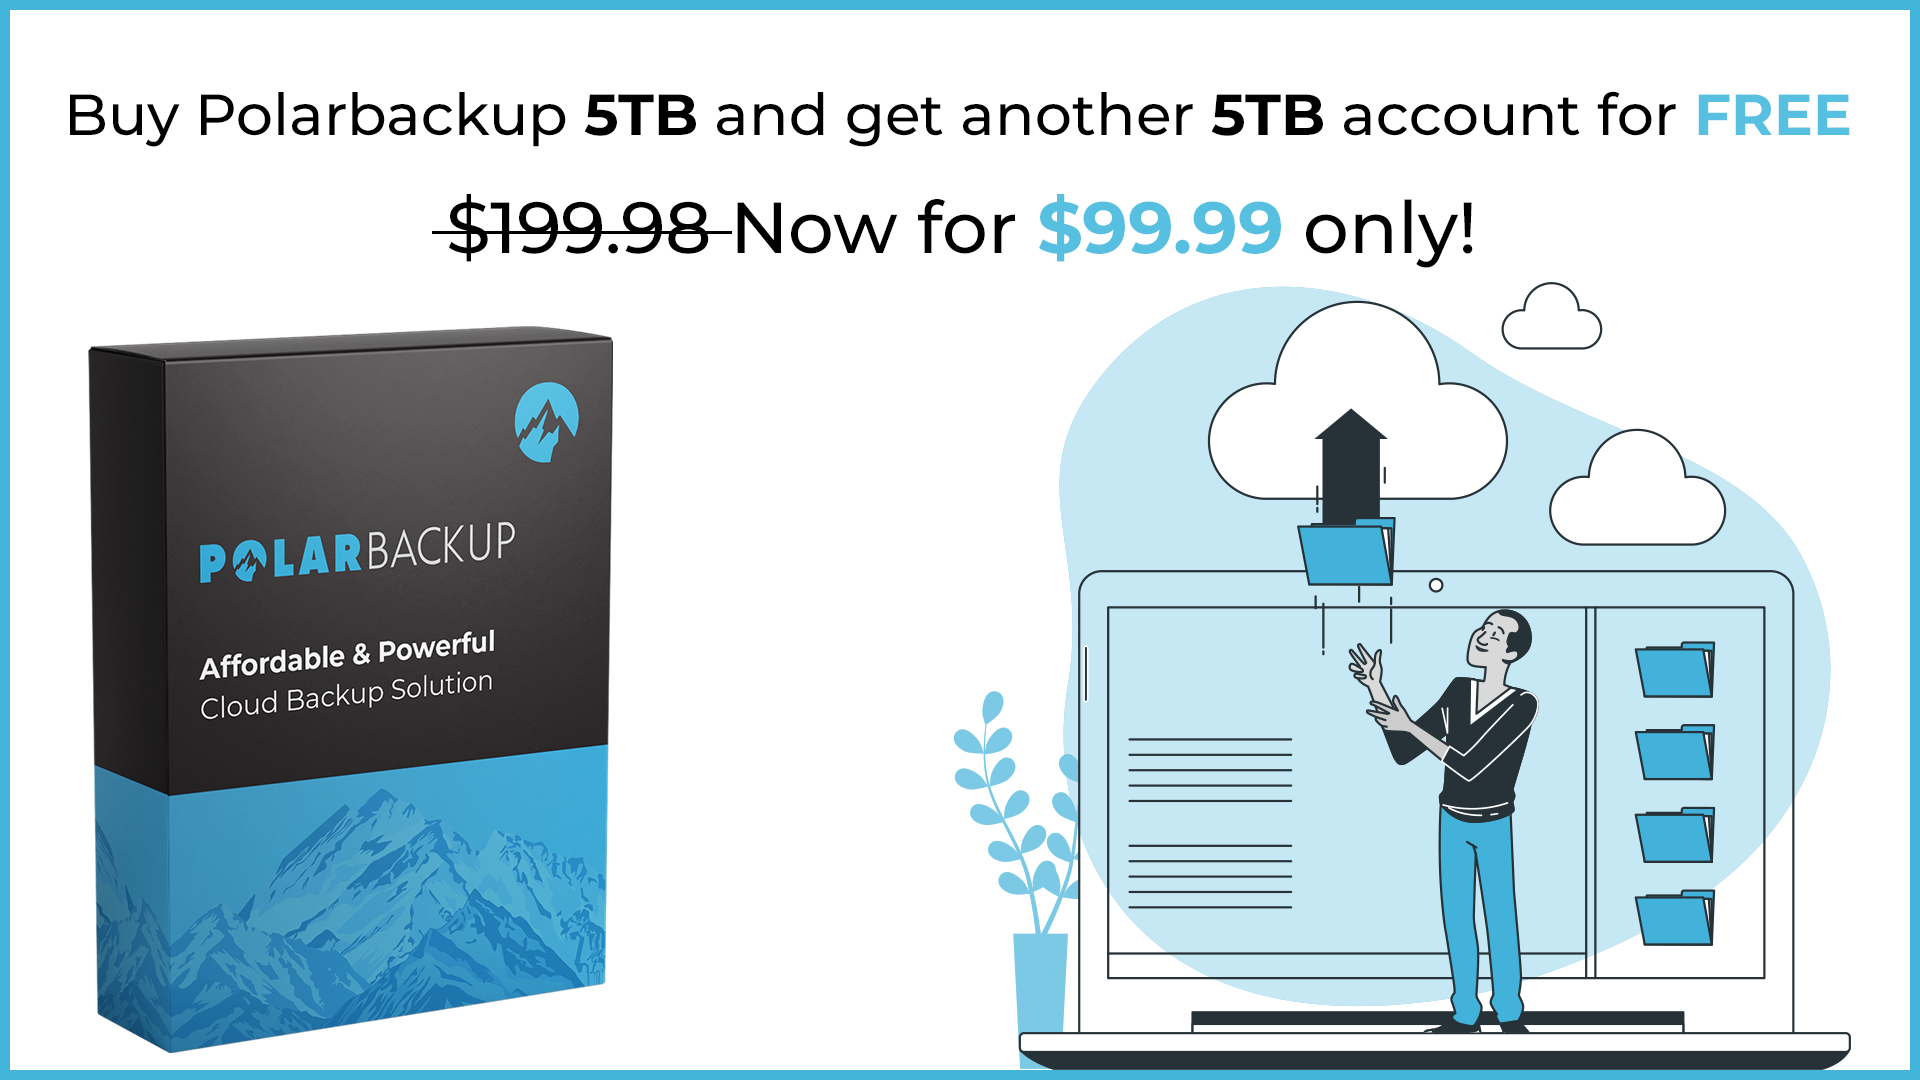 Buy Polarbackup 5TB and get another 5TB account for FREE - Lifetime Screenshot